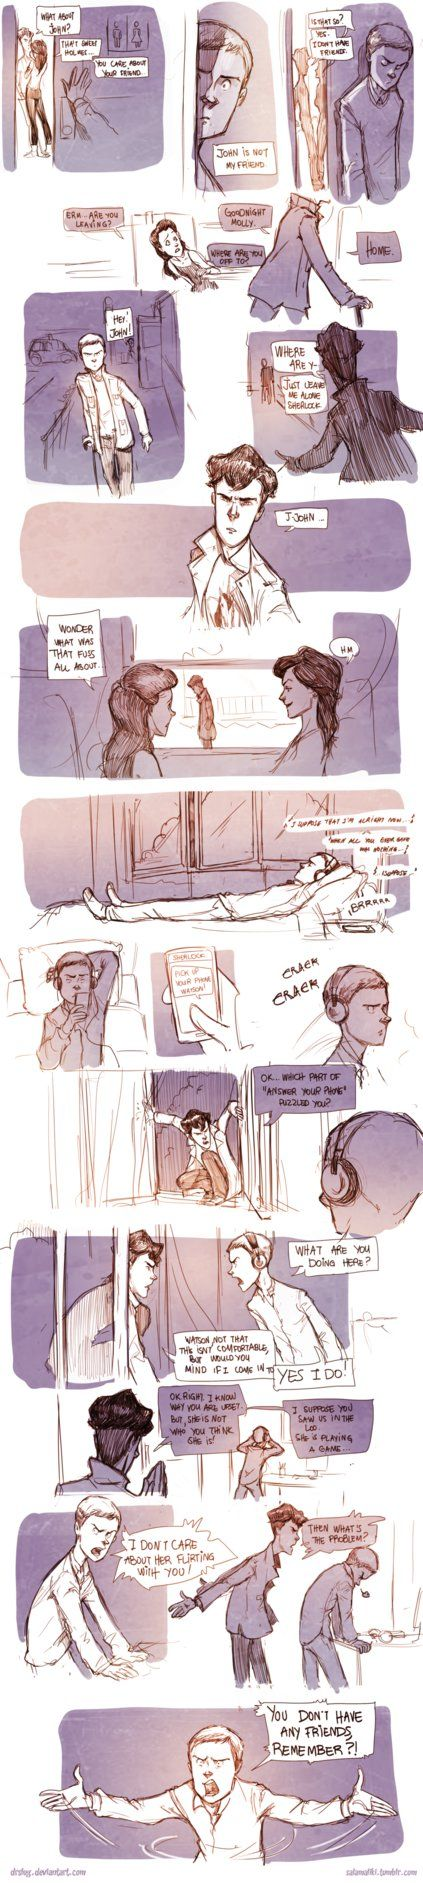 Teen Sherlock Irene pt3 by DrSlug on deviantART I love how he just busts through the window :)